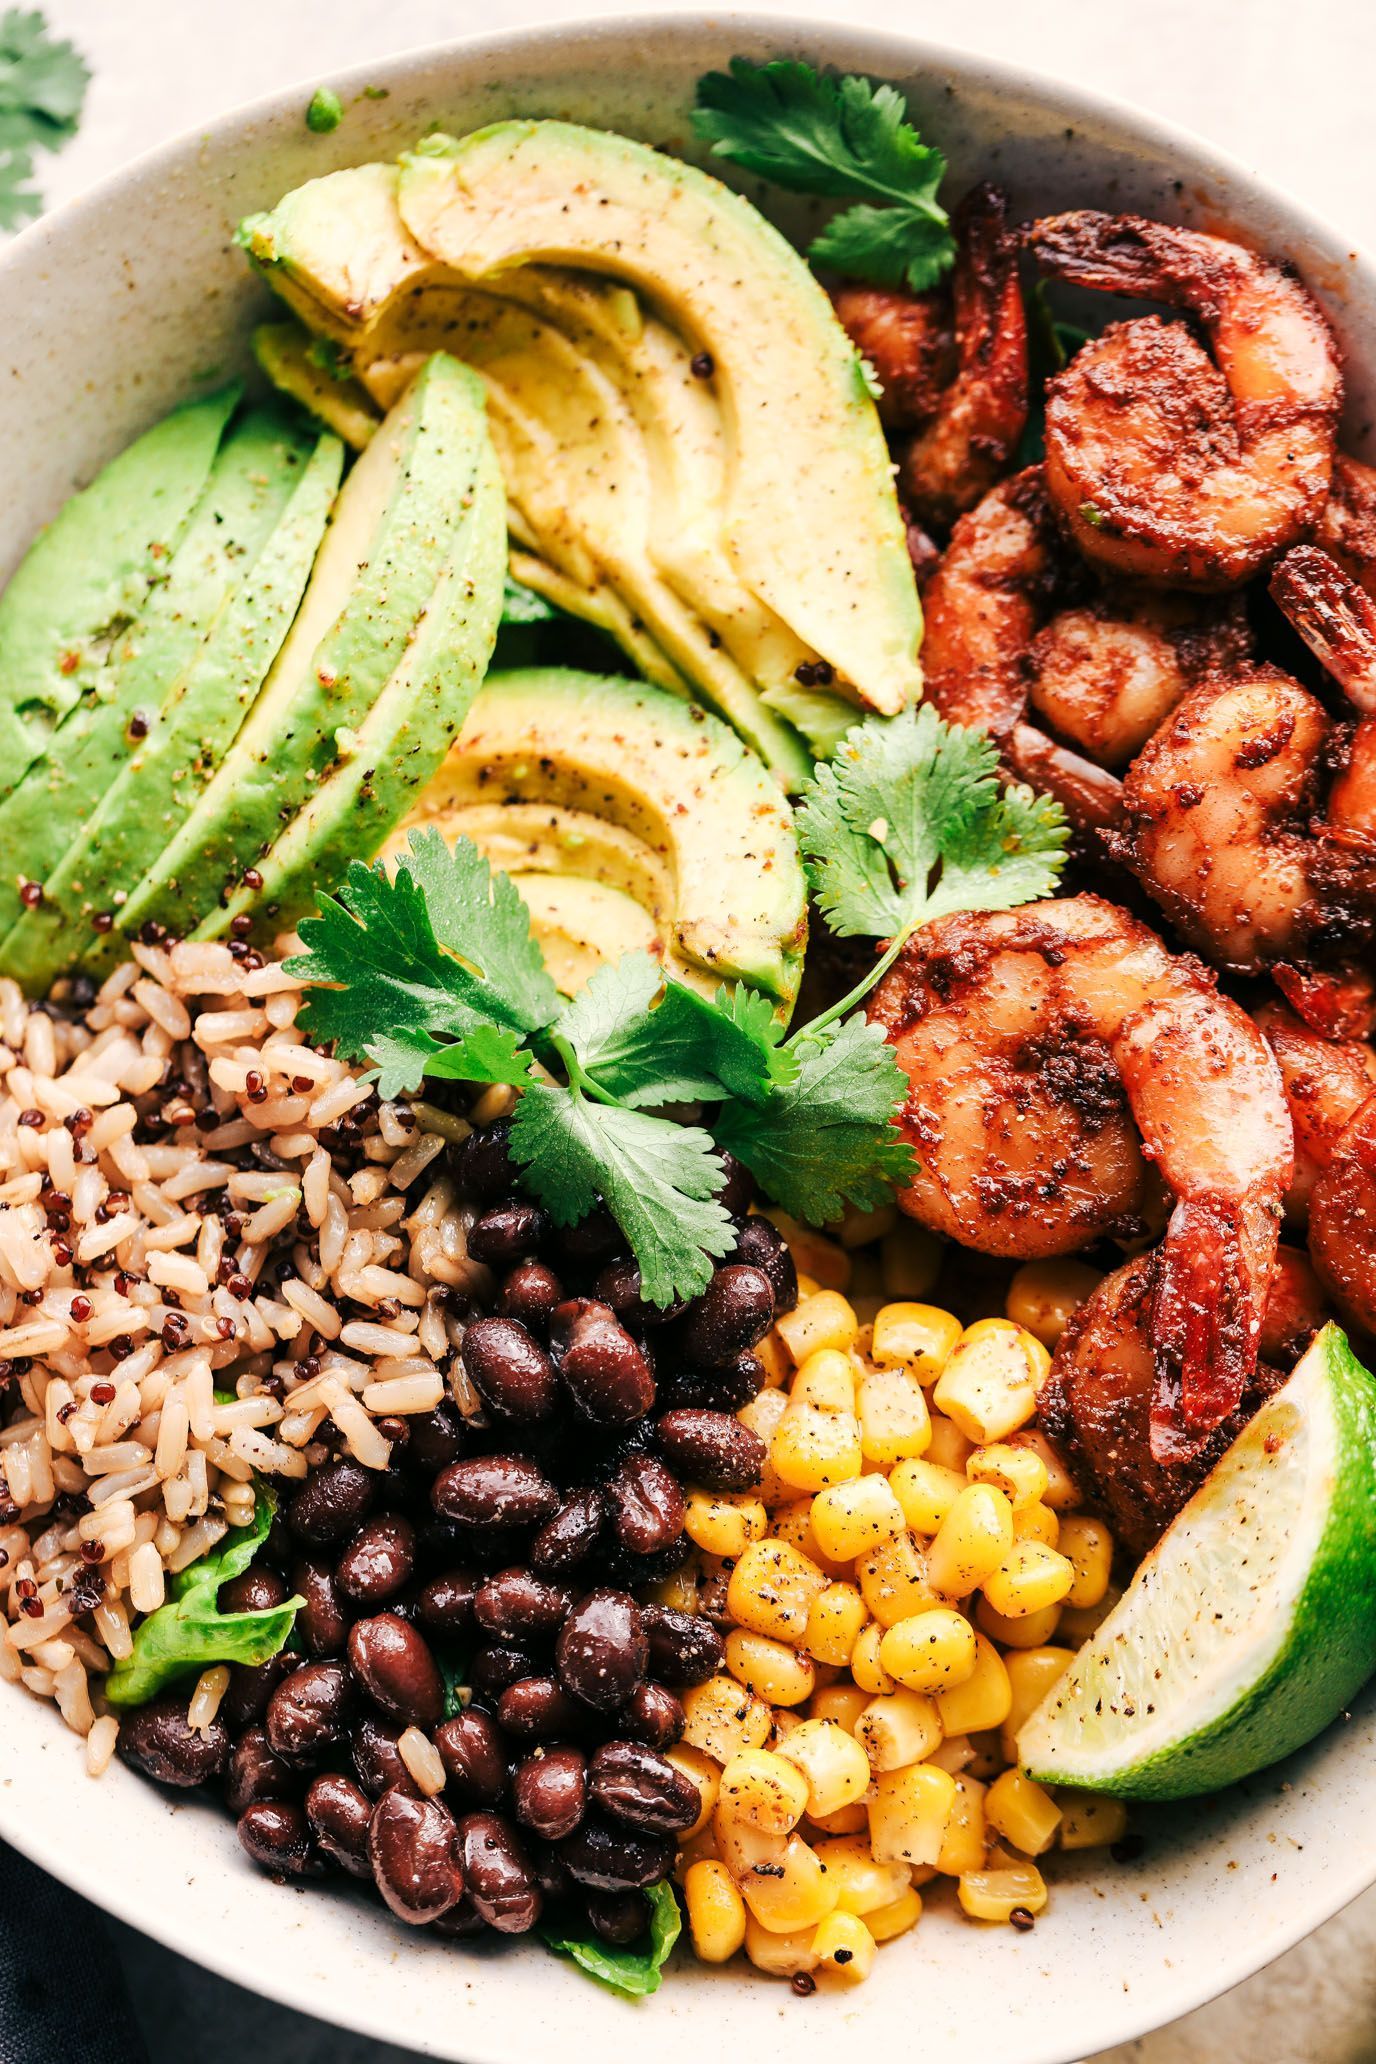 Blackened Shrimp Avocado Burrito Bowls | The Recipe Critic